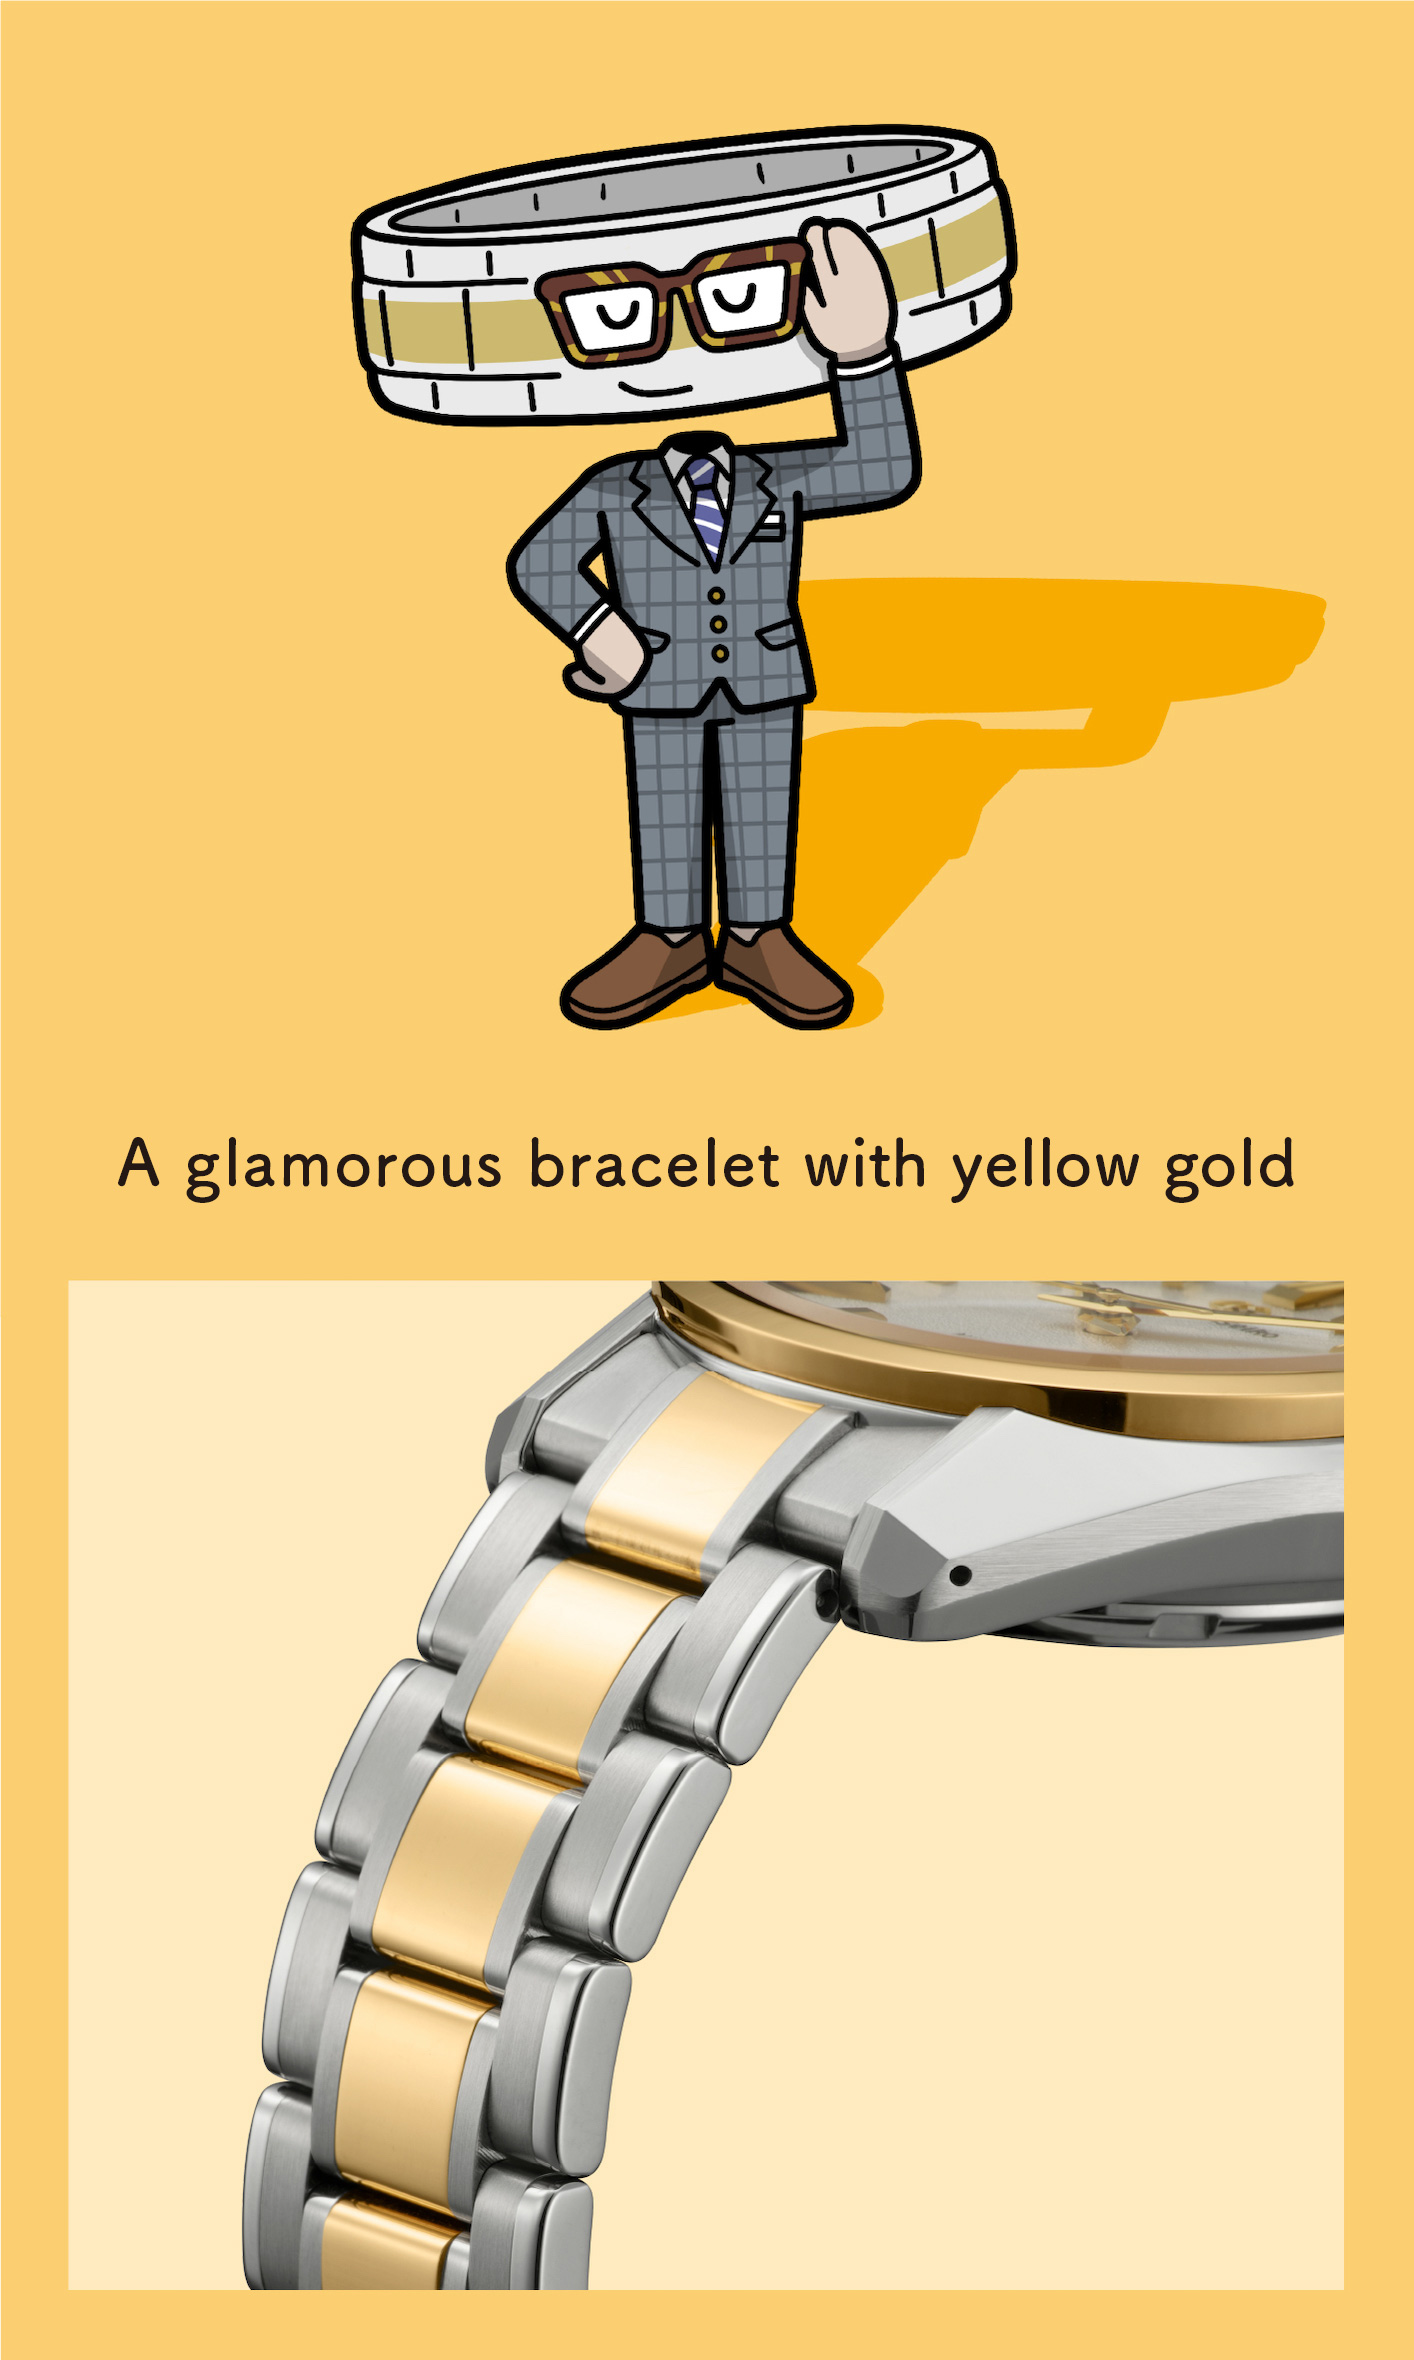 A glamorous bracelet with yellow gold (Enlarged photo of the bracelet)